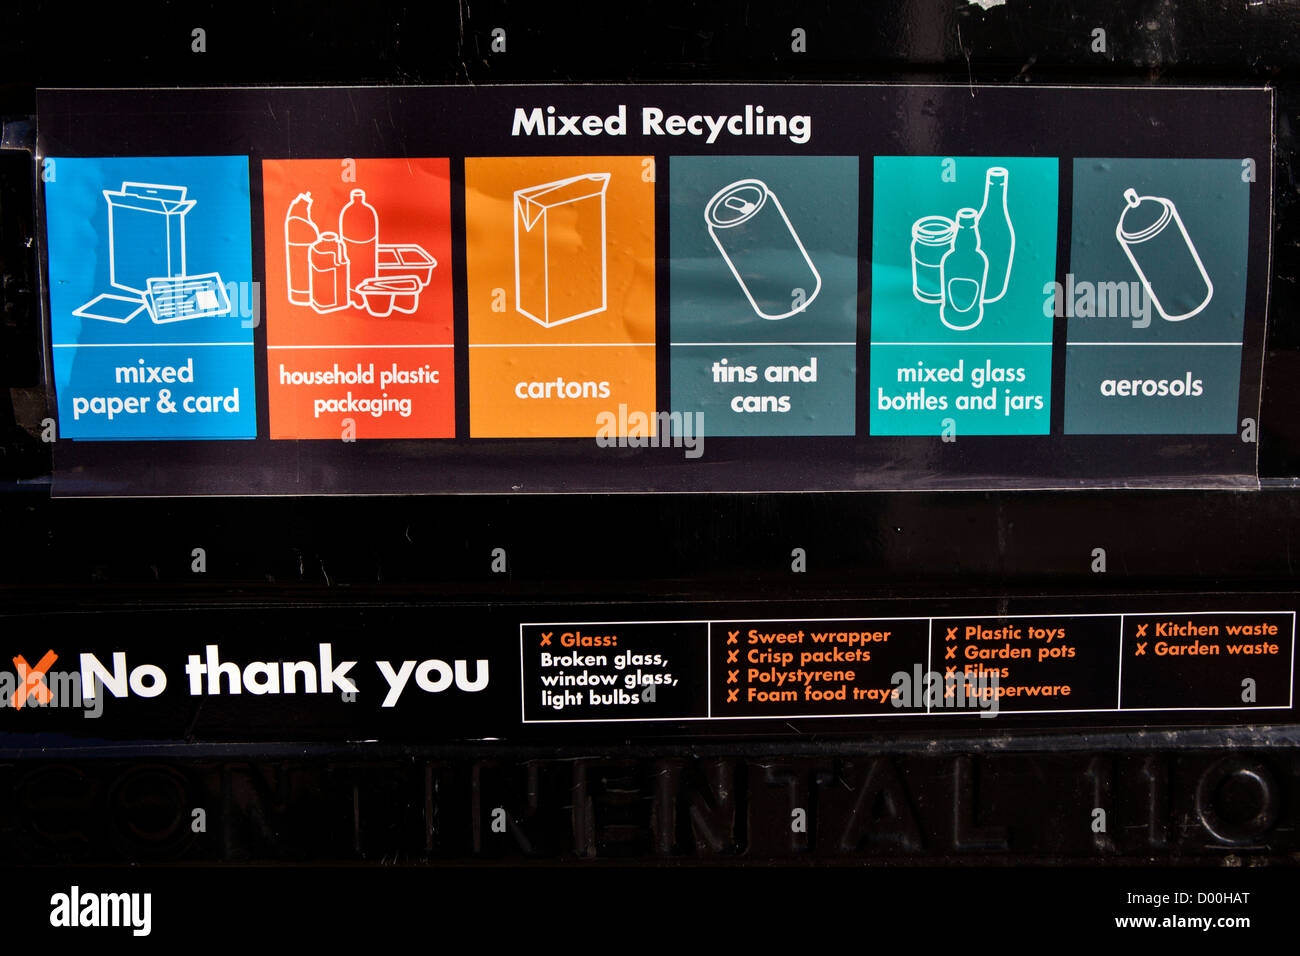 Recycle Sign Scribbling Green Environment Hd together with 83685 together with 49226 moreover 30090382 besides Stock Photo Recycling Bins For Mixed Items Paper Glass Plastic Etc In Hackney 51644736. on recycling cart